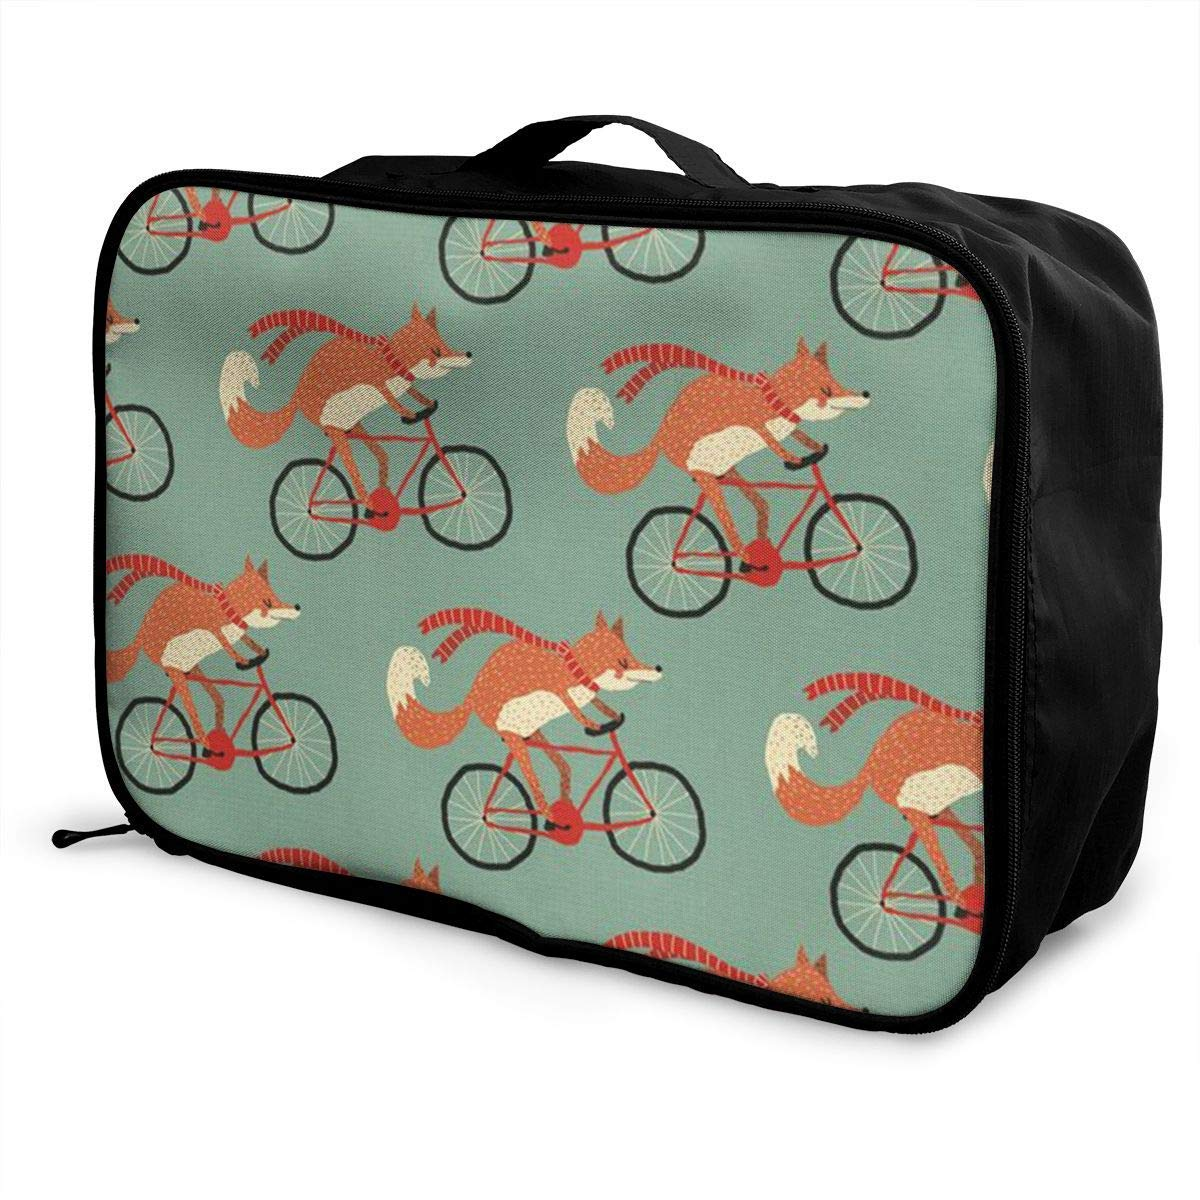 Portable Luggage Duffel Bag Fox Riding A Bicycle Travel Bags Carry-on In Trolley Handle